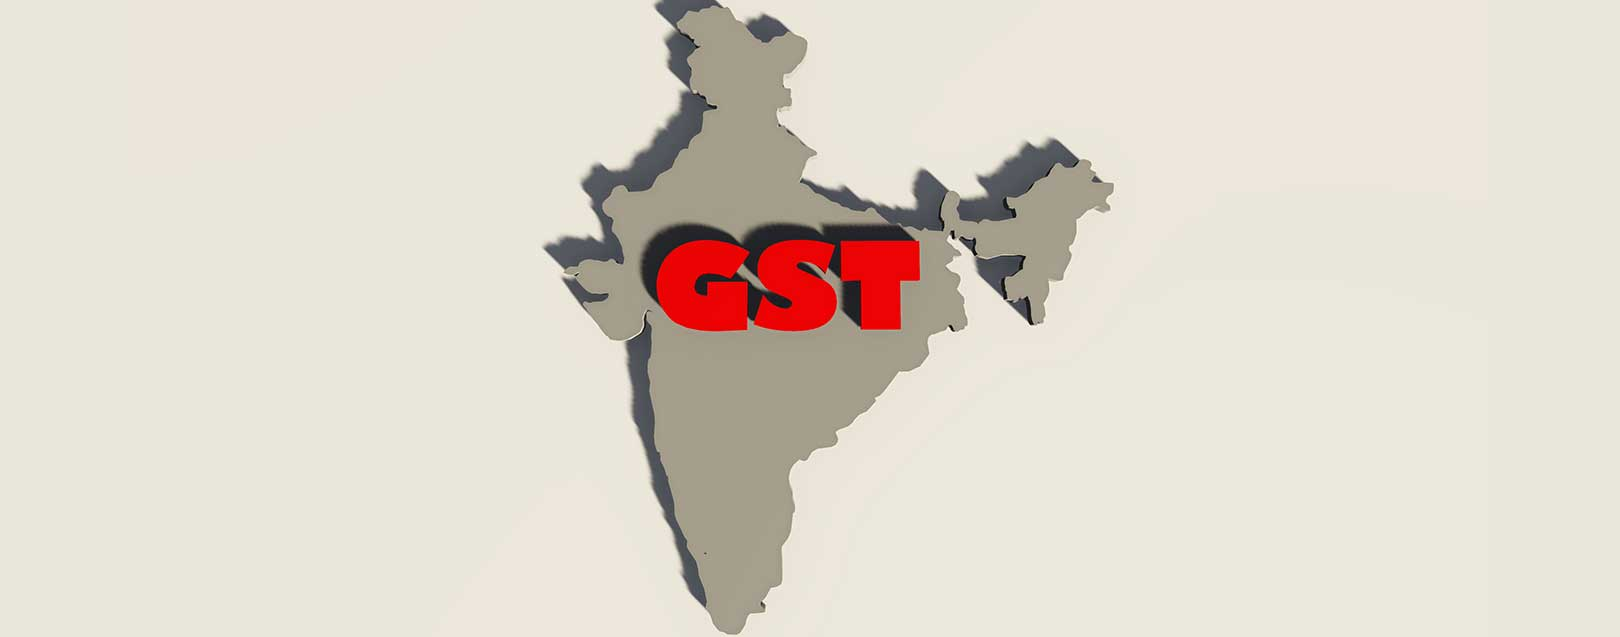 DGFT meeting all the RA's to address GST issues